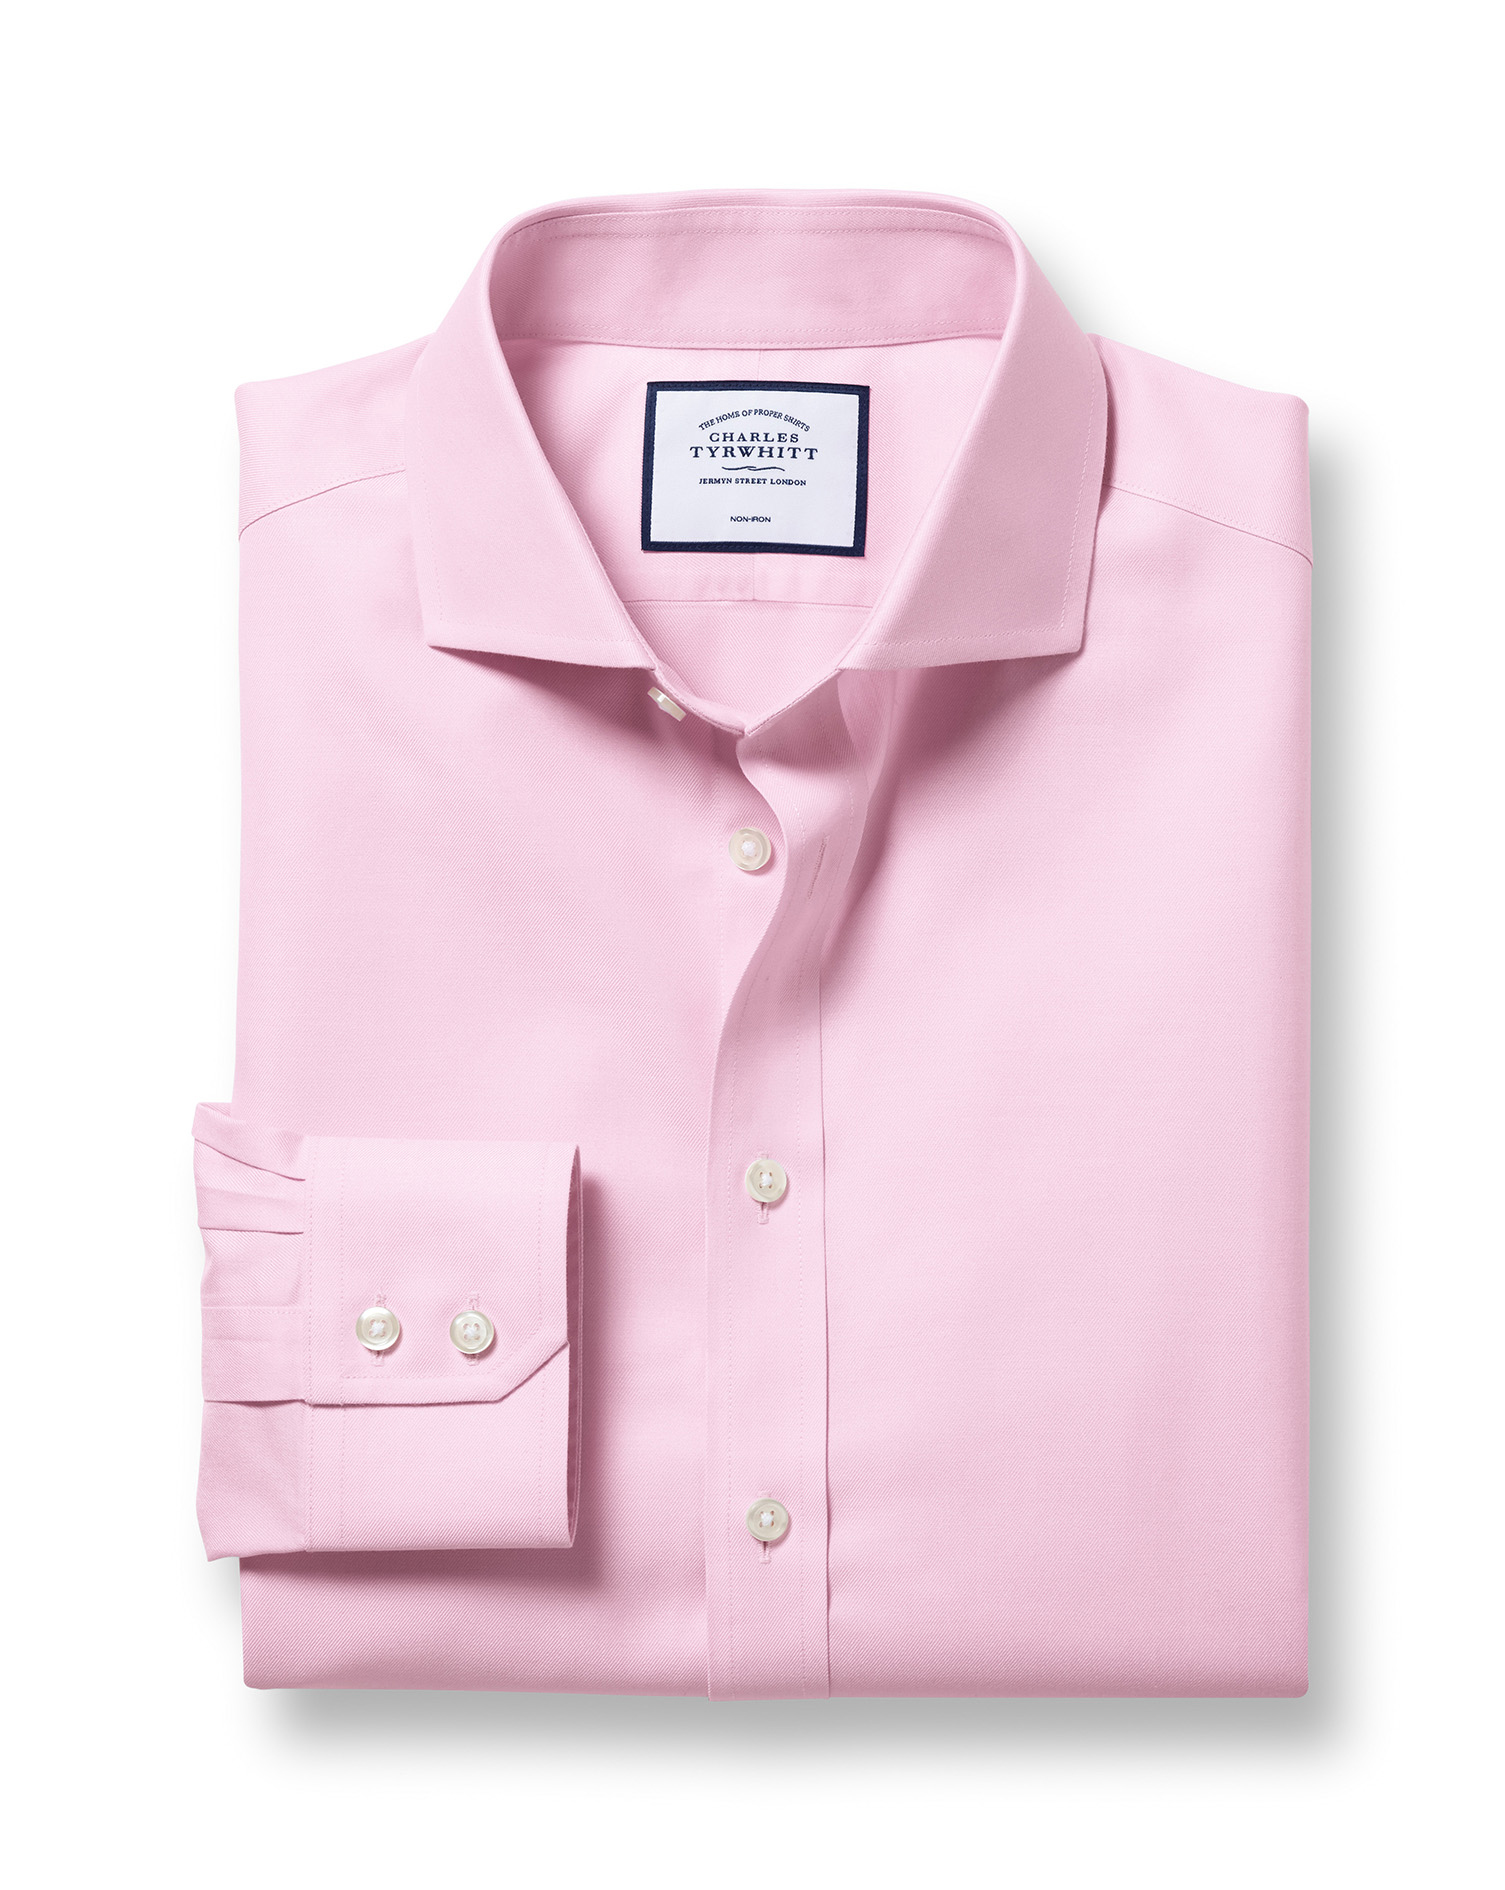 Slim Fit Cutaway Non-Iron Twill Pink Cotton Formal Shirt Double Cuff Size 17/36 by Charles Tyrwhitt